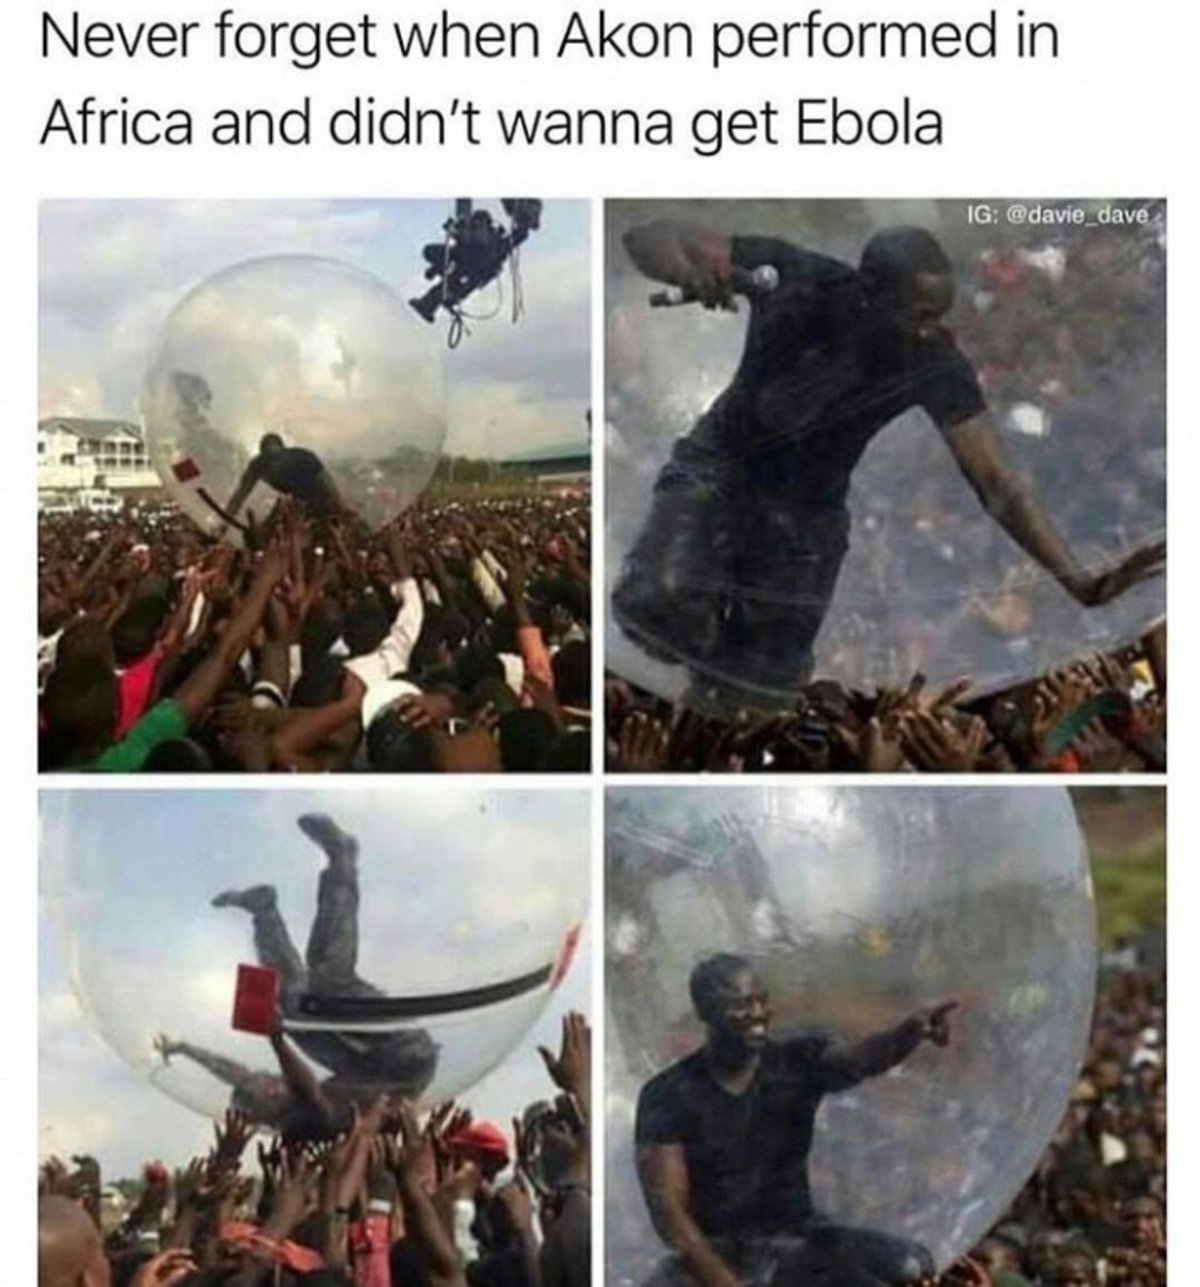 bubble boy. .. I'm surprised they were strong enough to lift him. You know with all that starving. Alexa play Africa by toto...